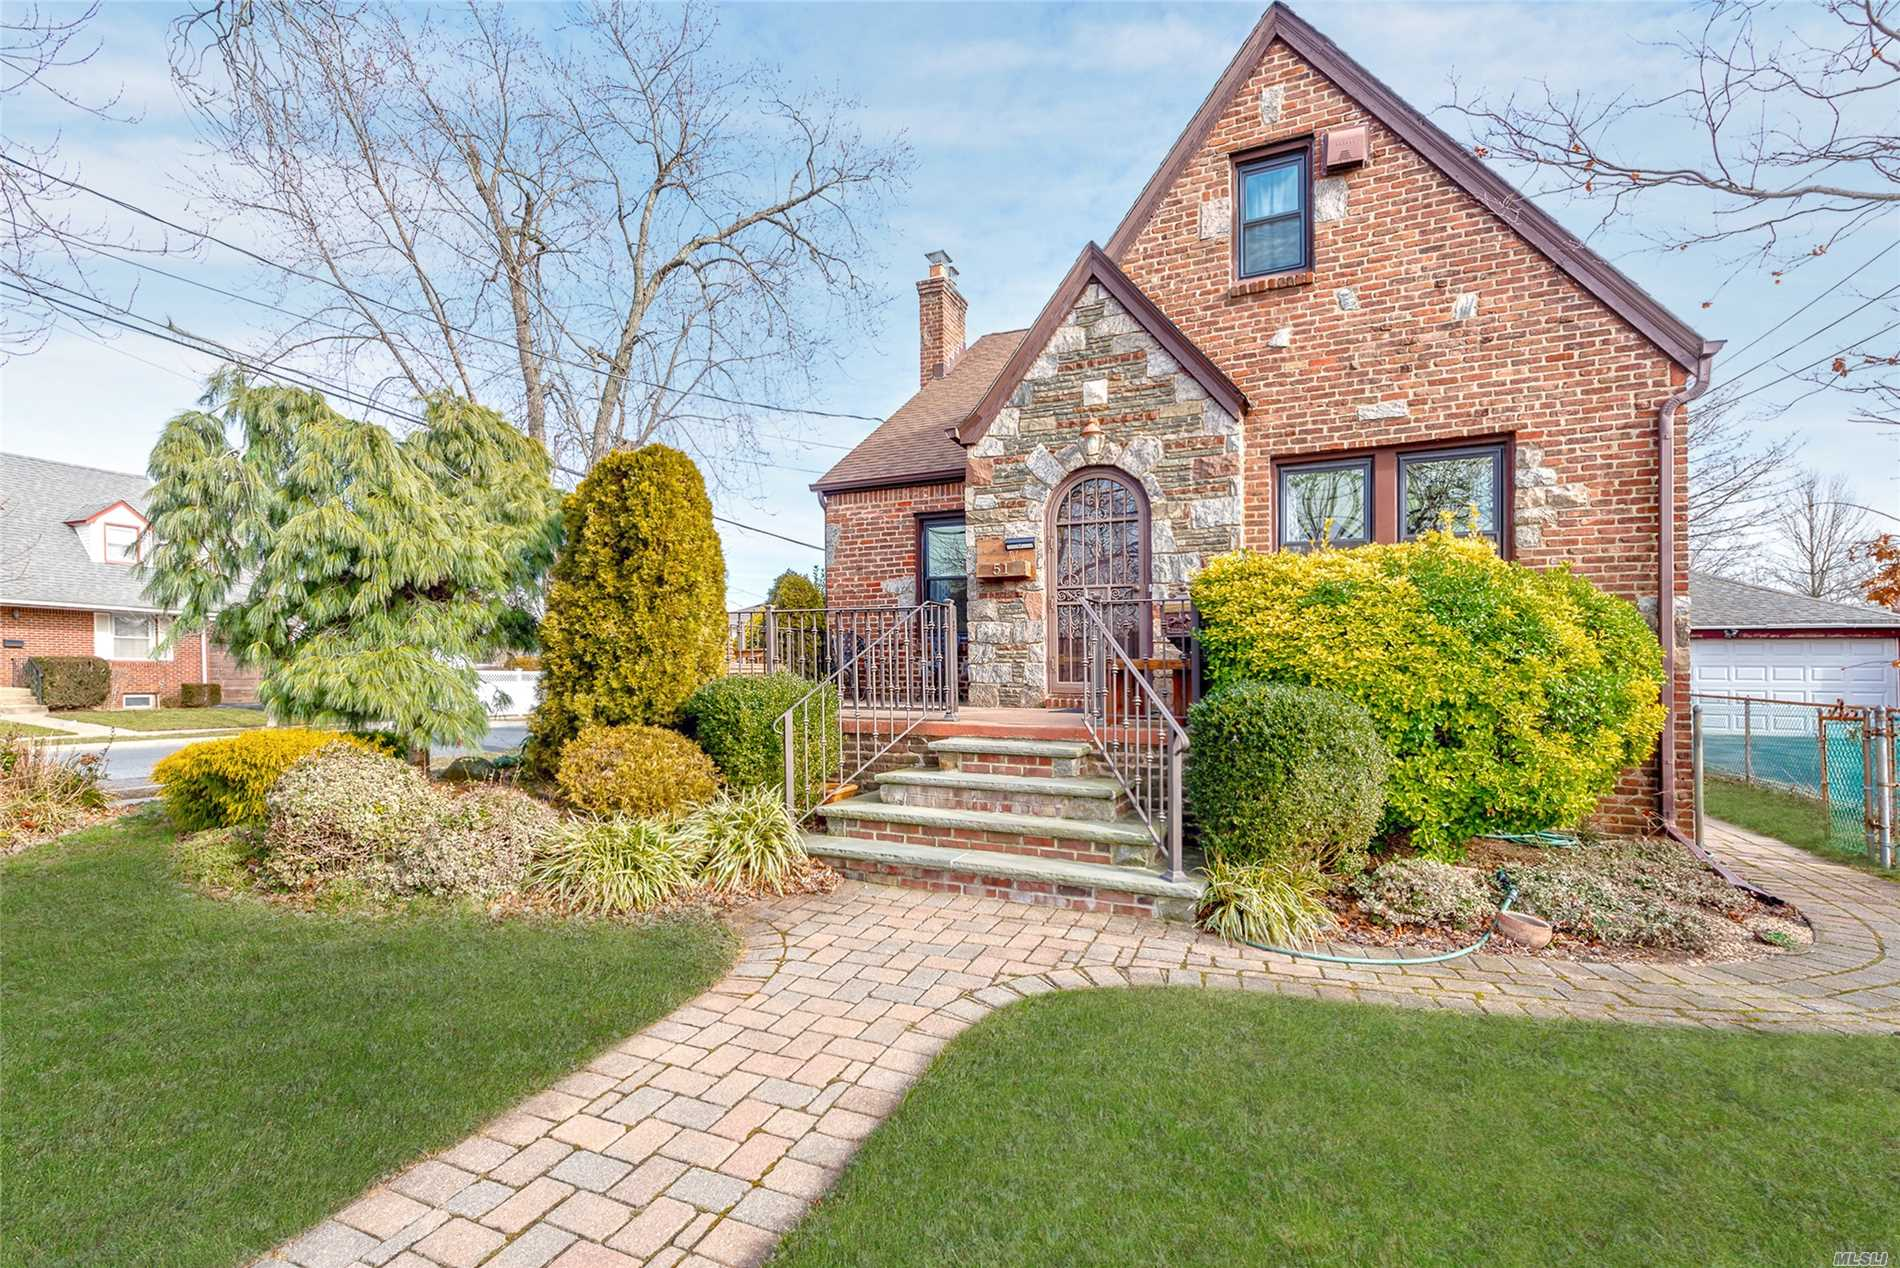 Updated Classic 5/6Br Brick Tudor W/Its Own Distinctive Style & Character! 51 Central Blvd - For G P S Is 2371 Central Blvd--Offers A 2-Car Garage/Rafter Storage, Granite Eik, Jacuzzi, Pvc Fence, Updated Roof, Pavers, Entry Steps, Crown Moldings, Inlay Hardwood Floors, Stone Fireplace, Finished Basement & Hihats! Gas Heat/Gas Stove, 200 Amps, Security To Station, Some Marvin Windows, Ductless Cac. Professionally Landscaped Yard.